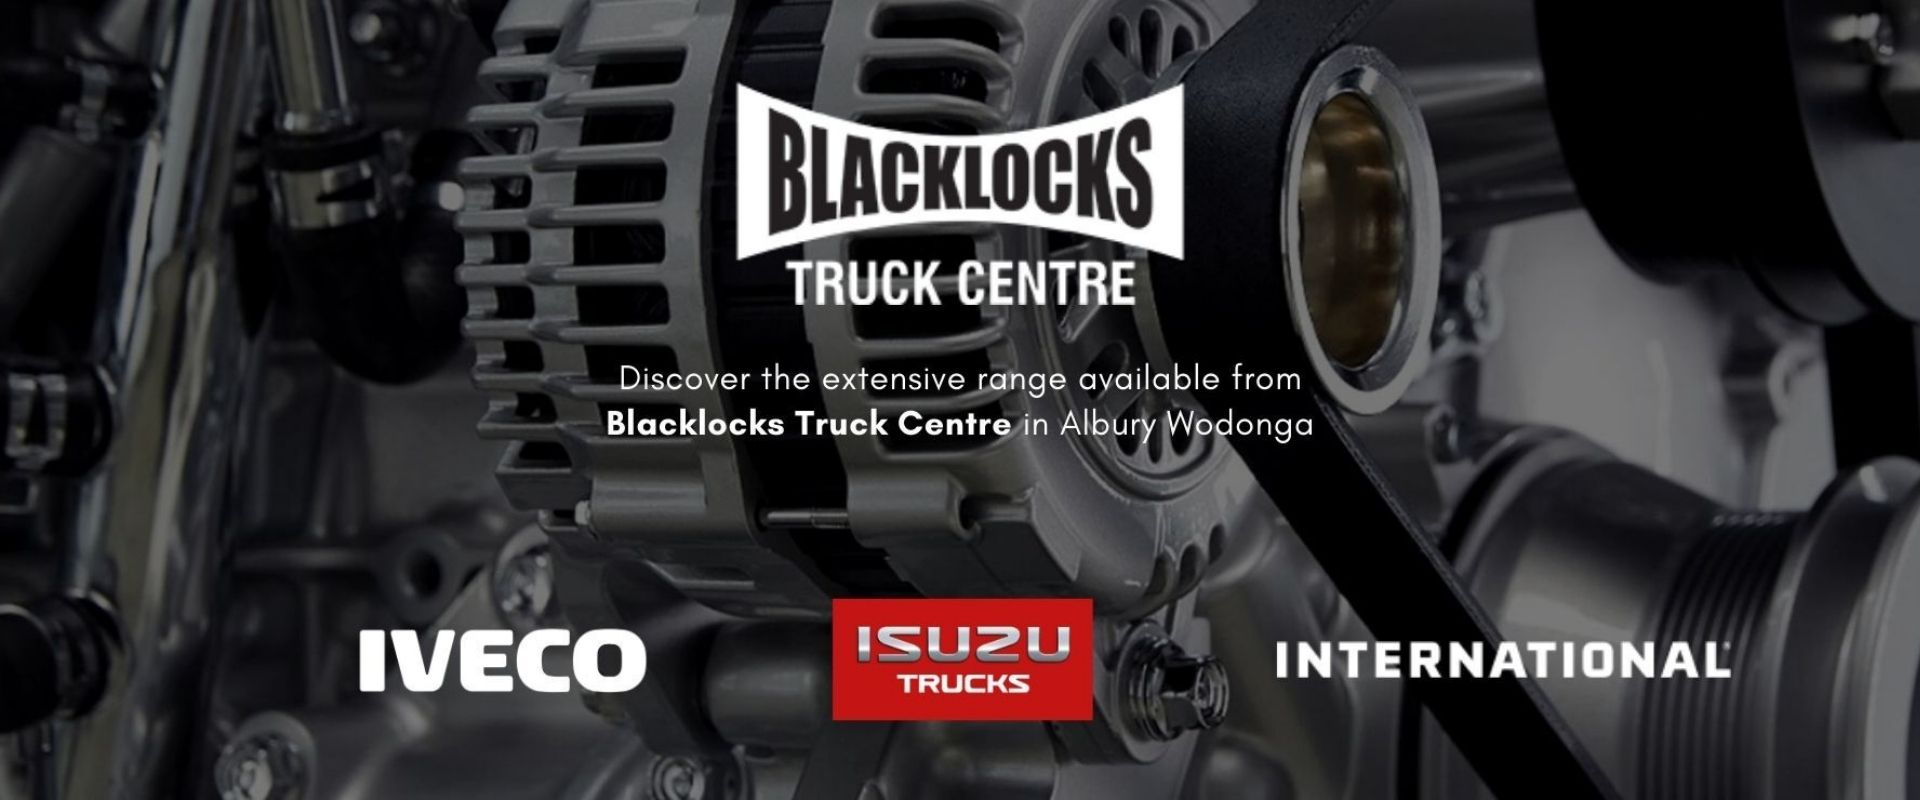 Visit Blacklocks Truck Centre